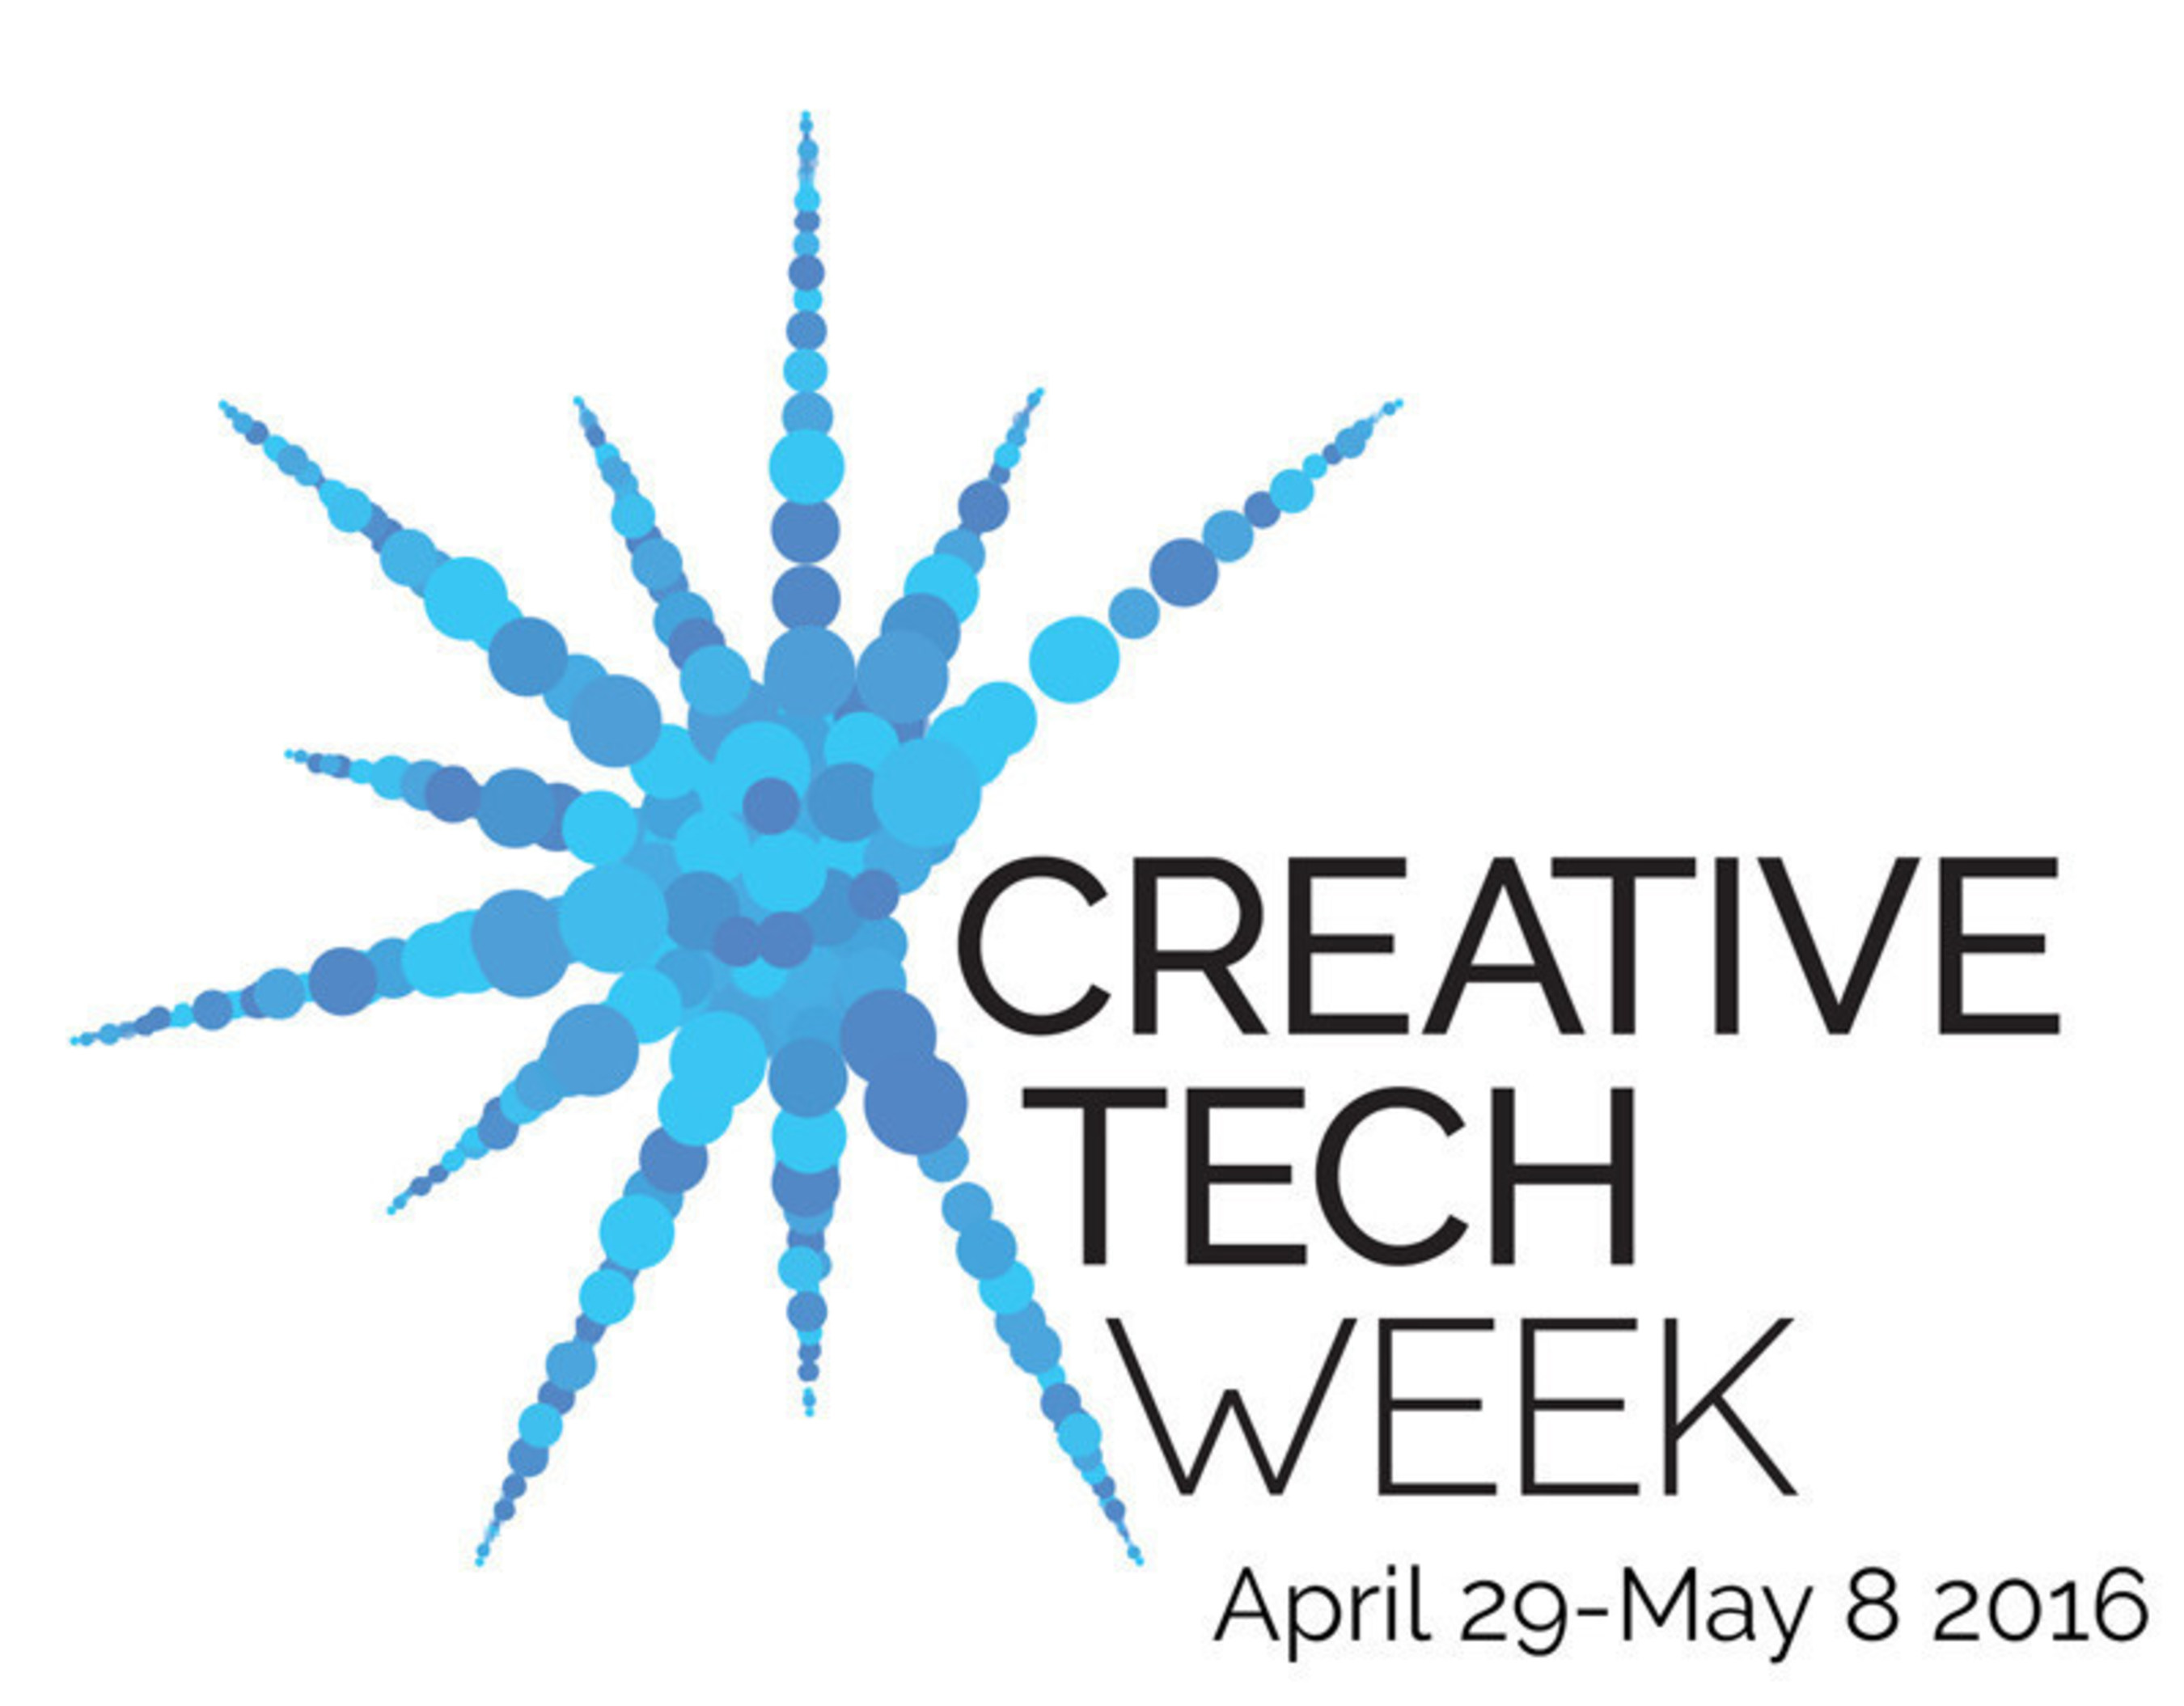 Creative Tech Week Is Coming to NYC April 29-May 8th